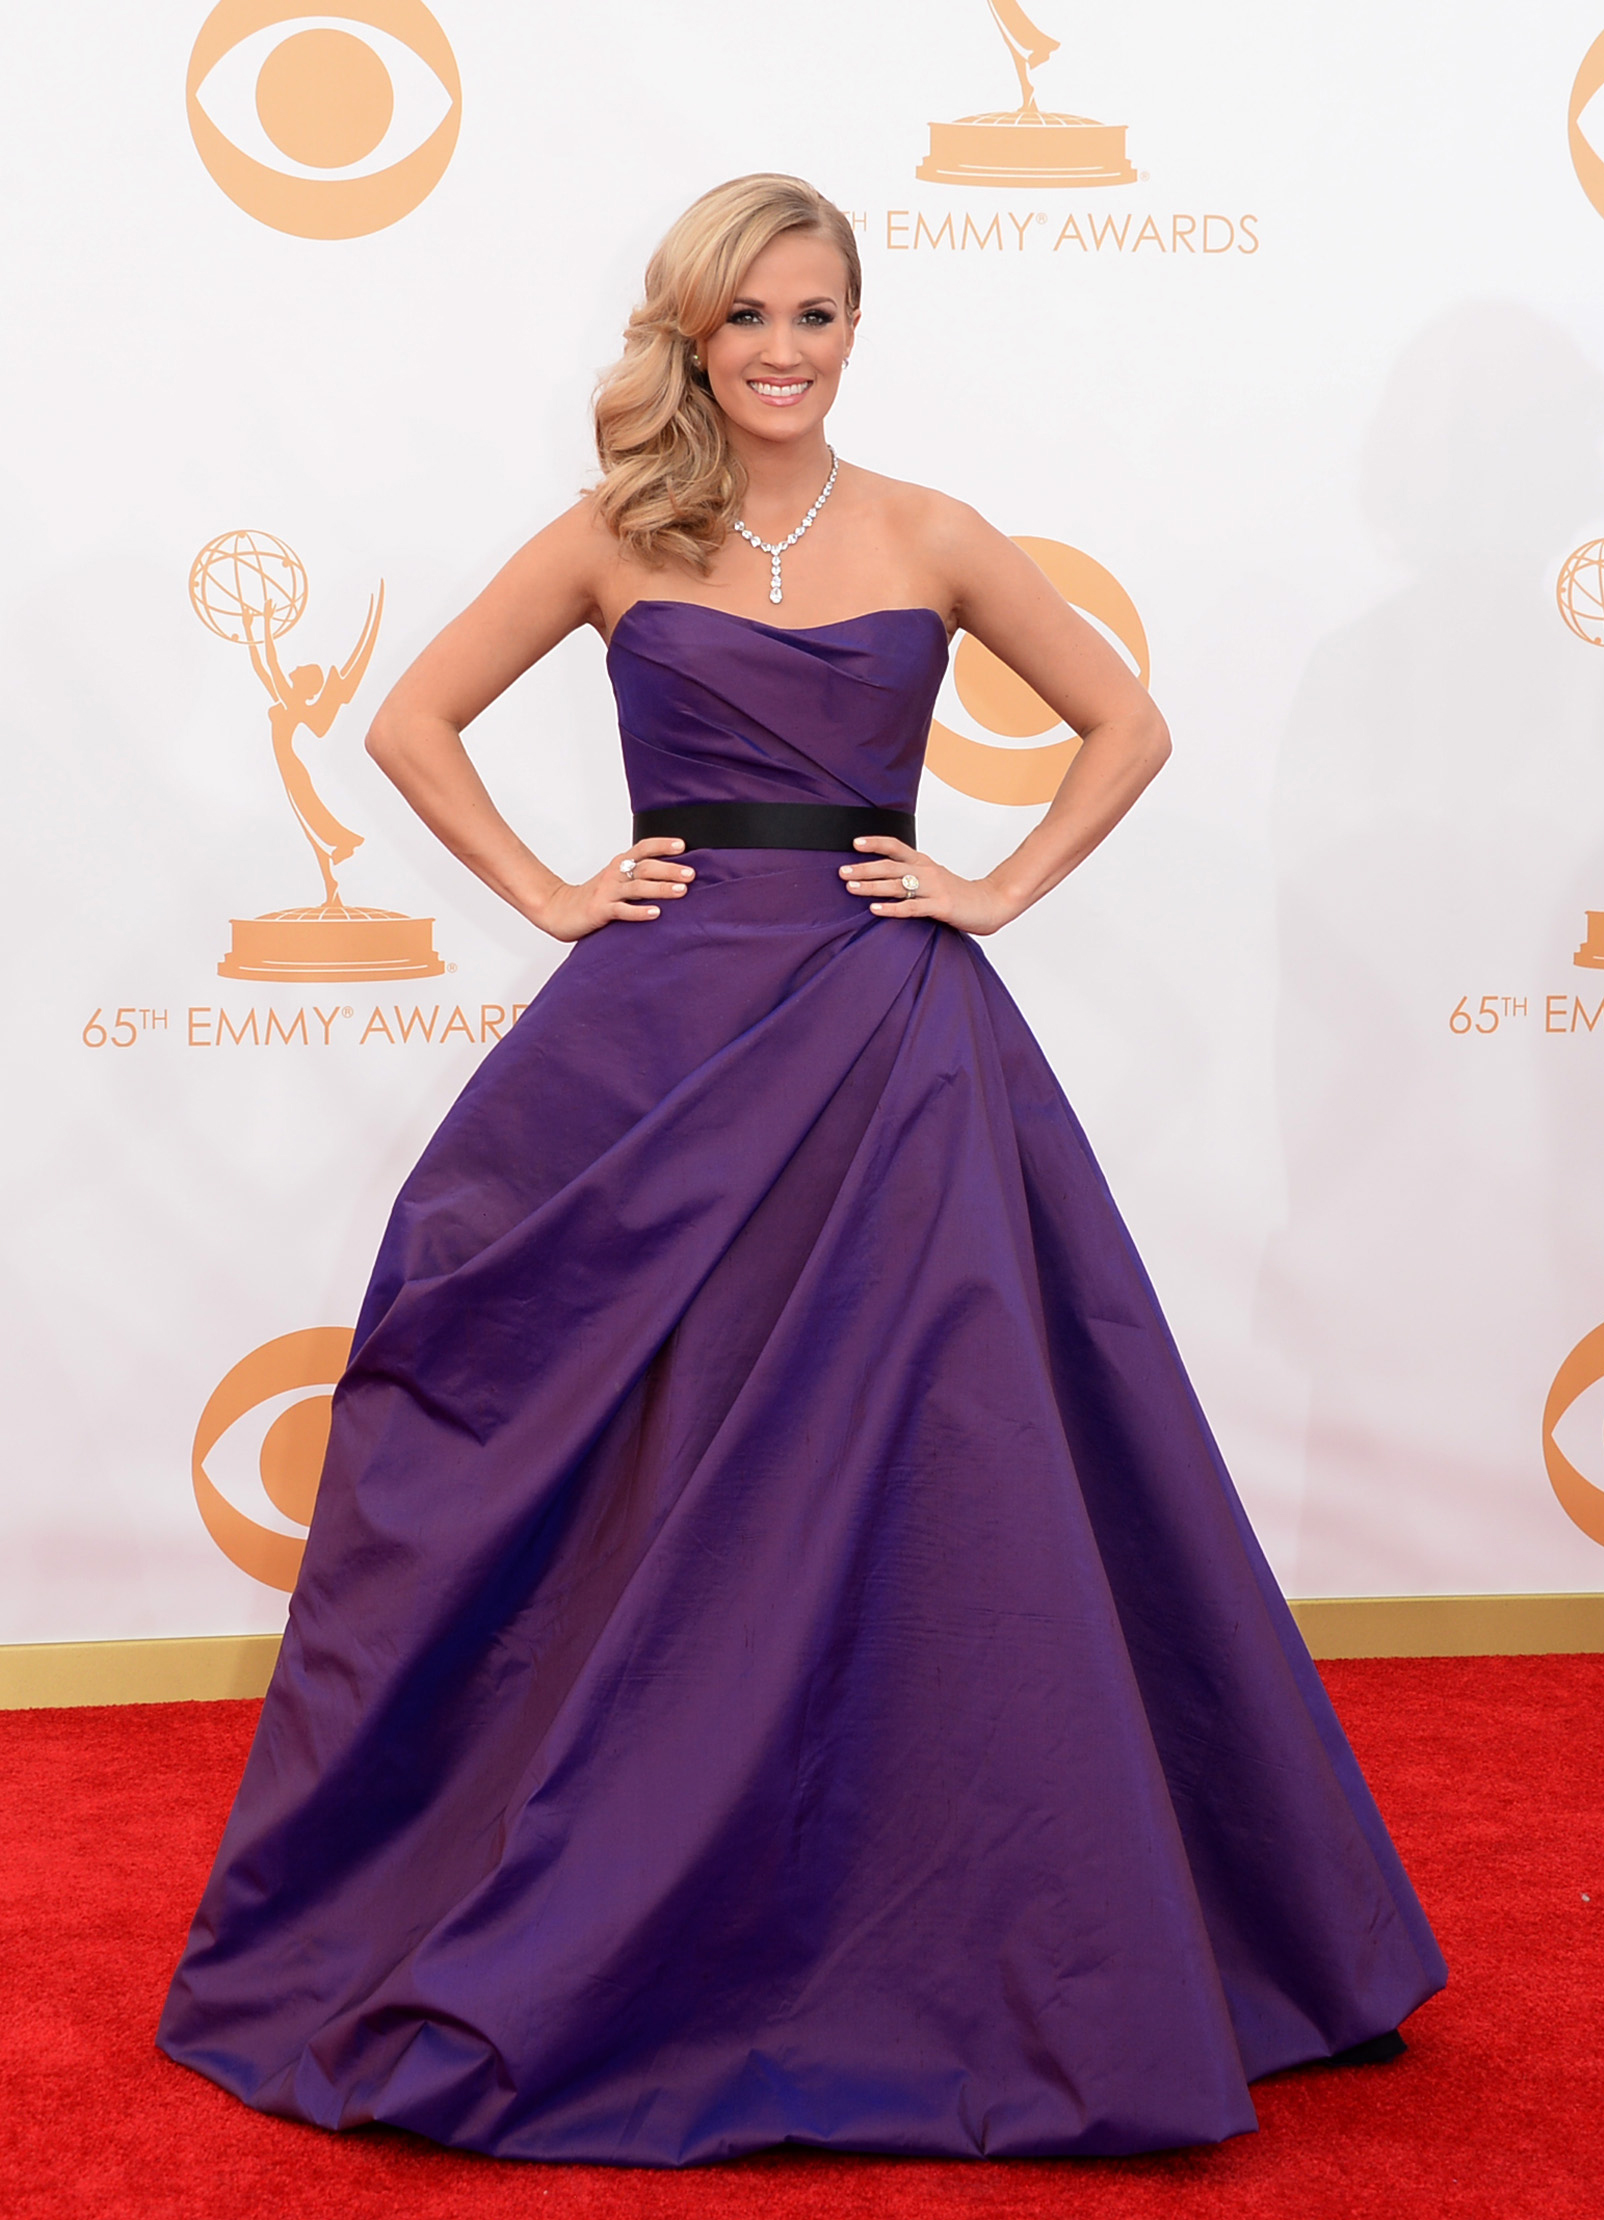 CarrieUnderwood_Emmys 2013_APPROVED IMAGE.jpg